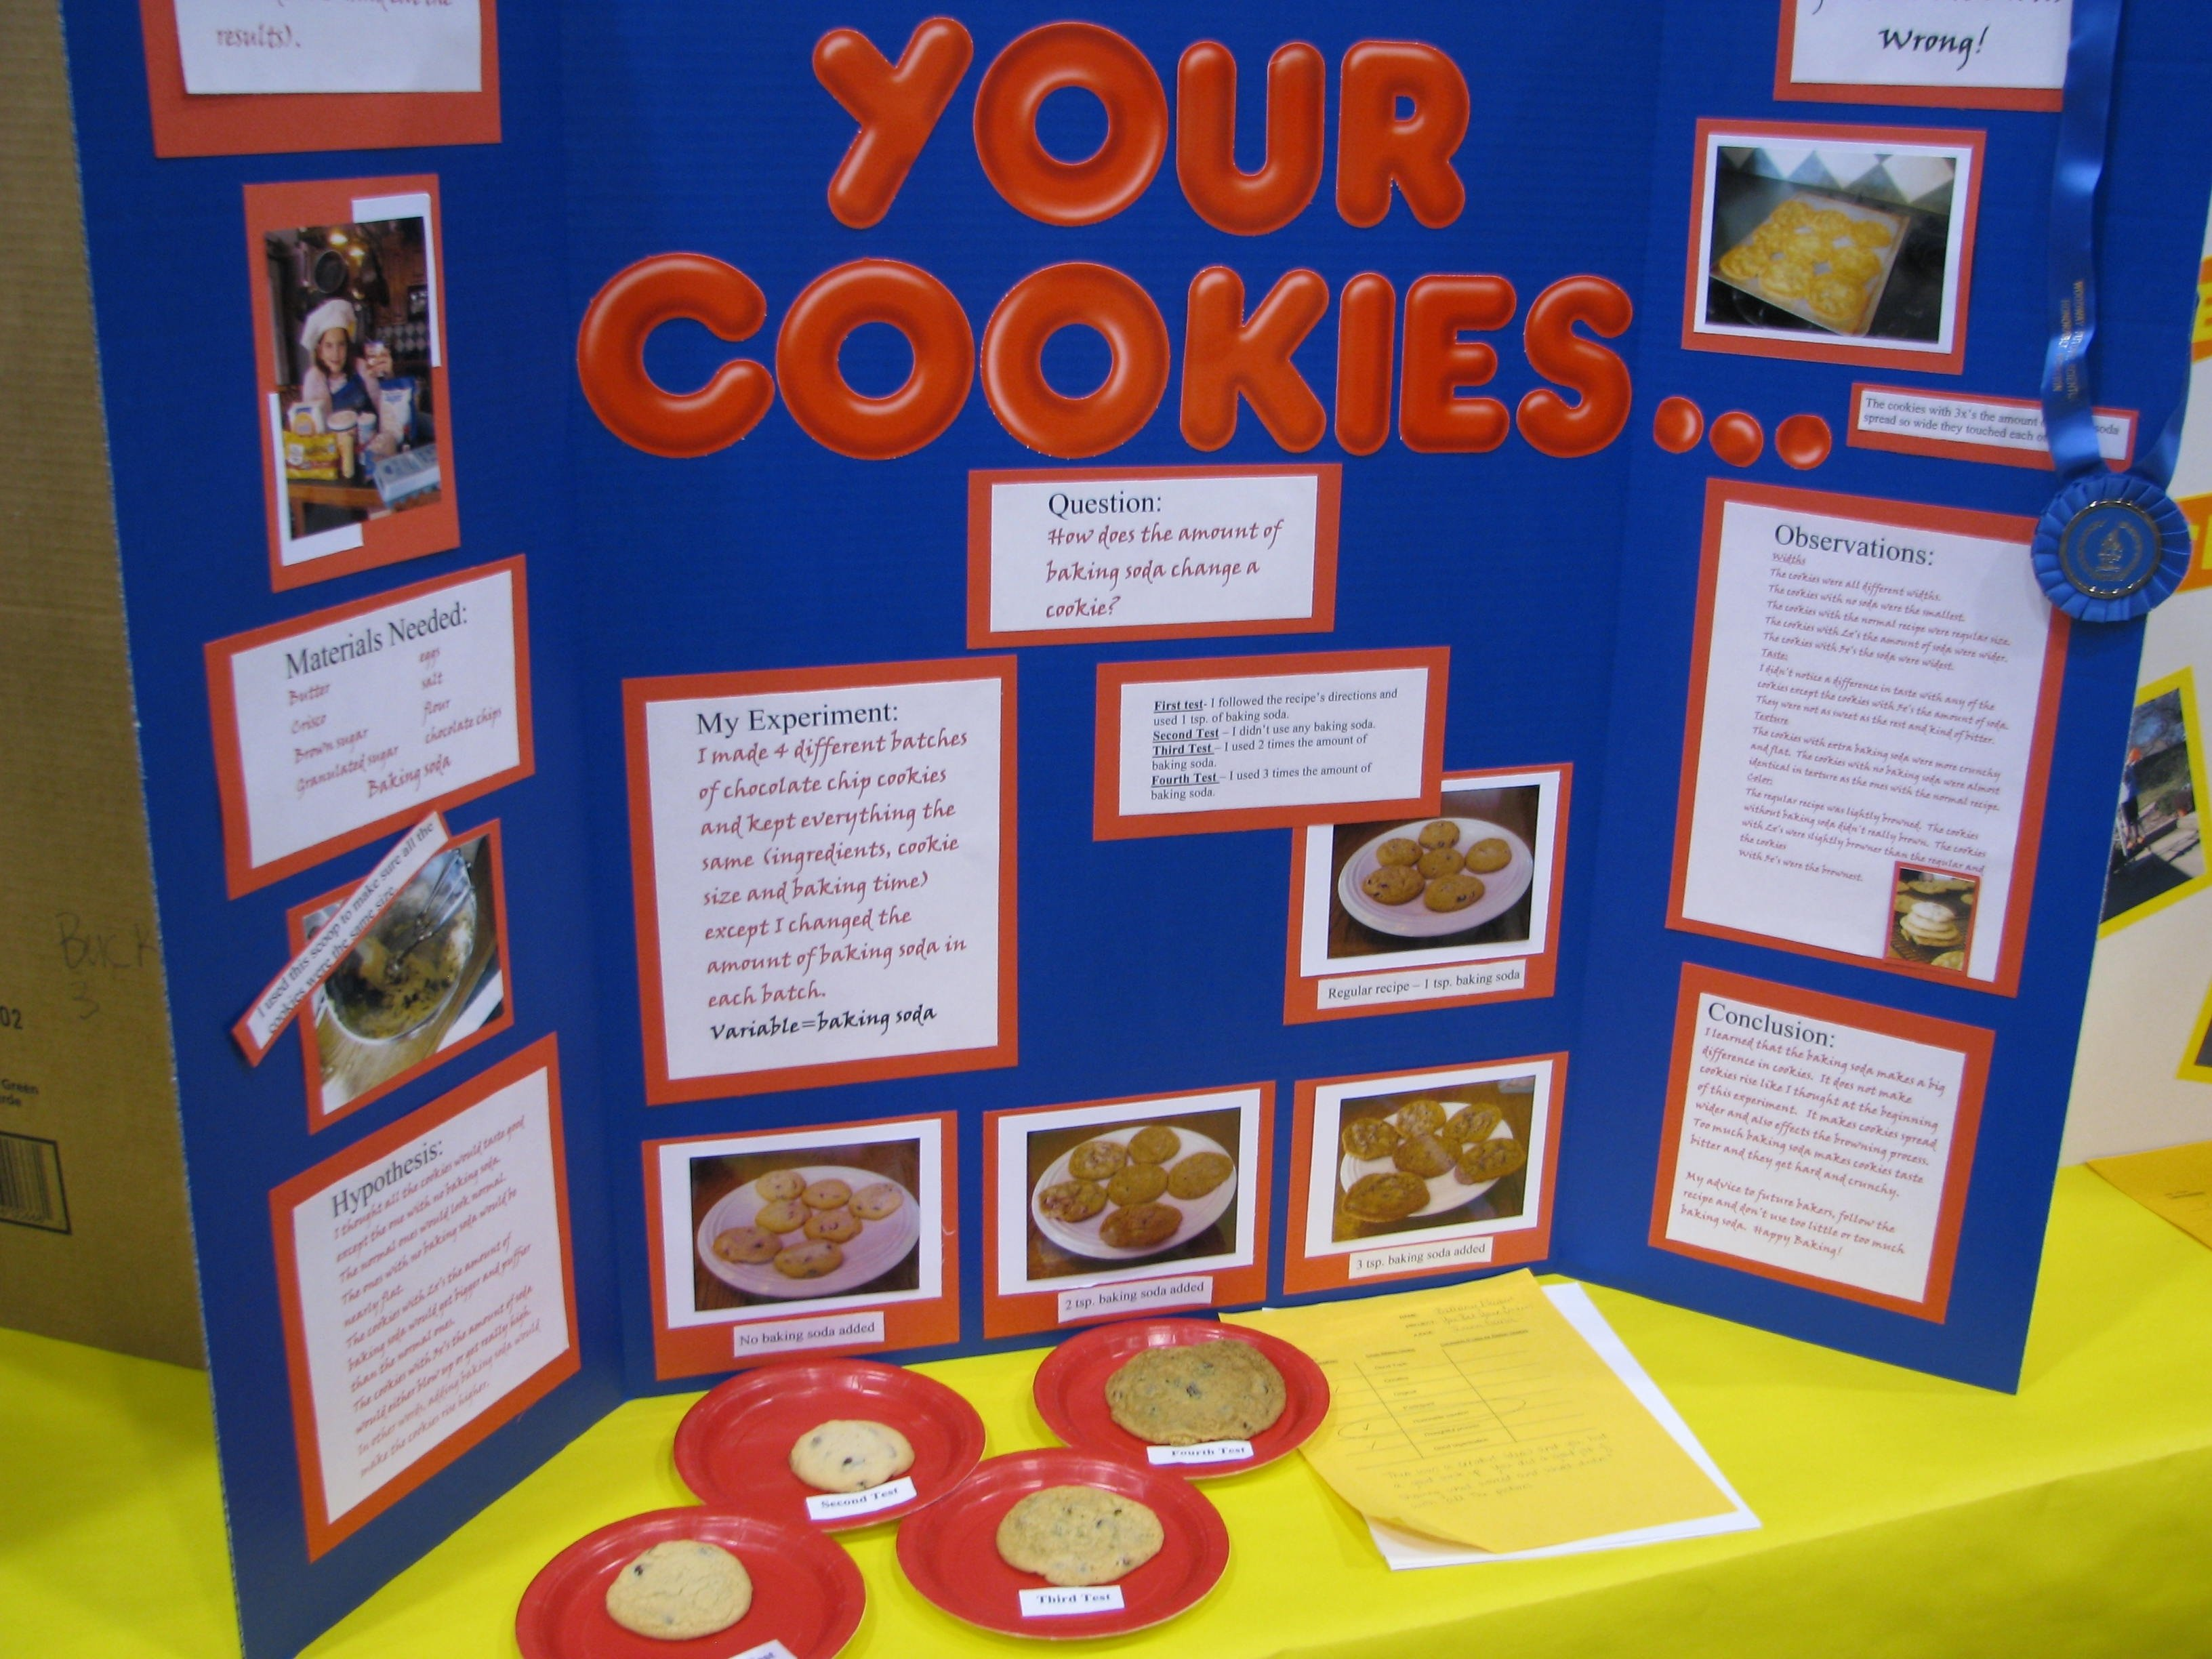 10 Lovely What Are Some Science Fair Ideas a science project etame mibawa co 2 2020